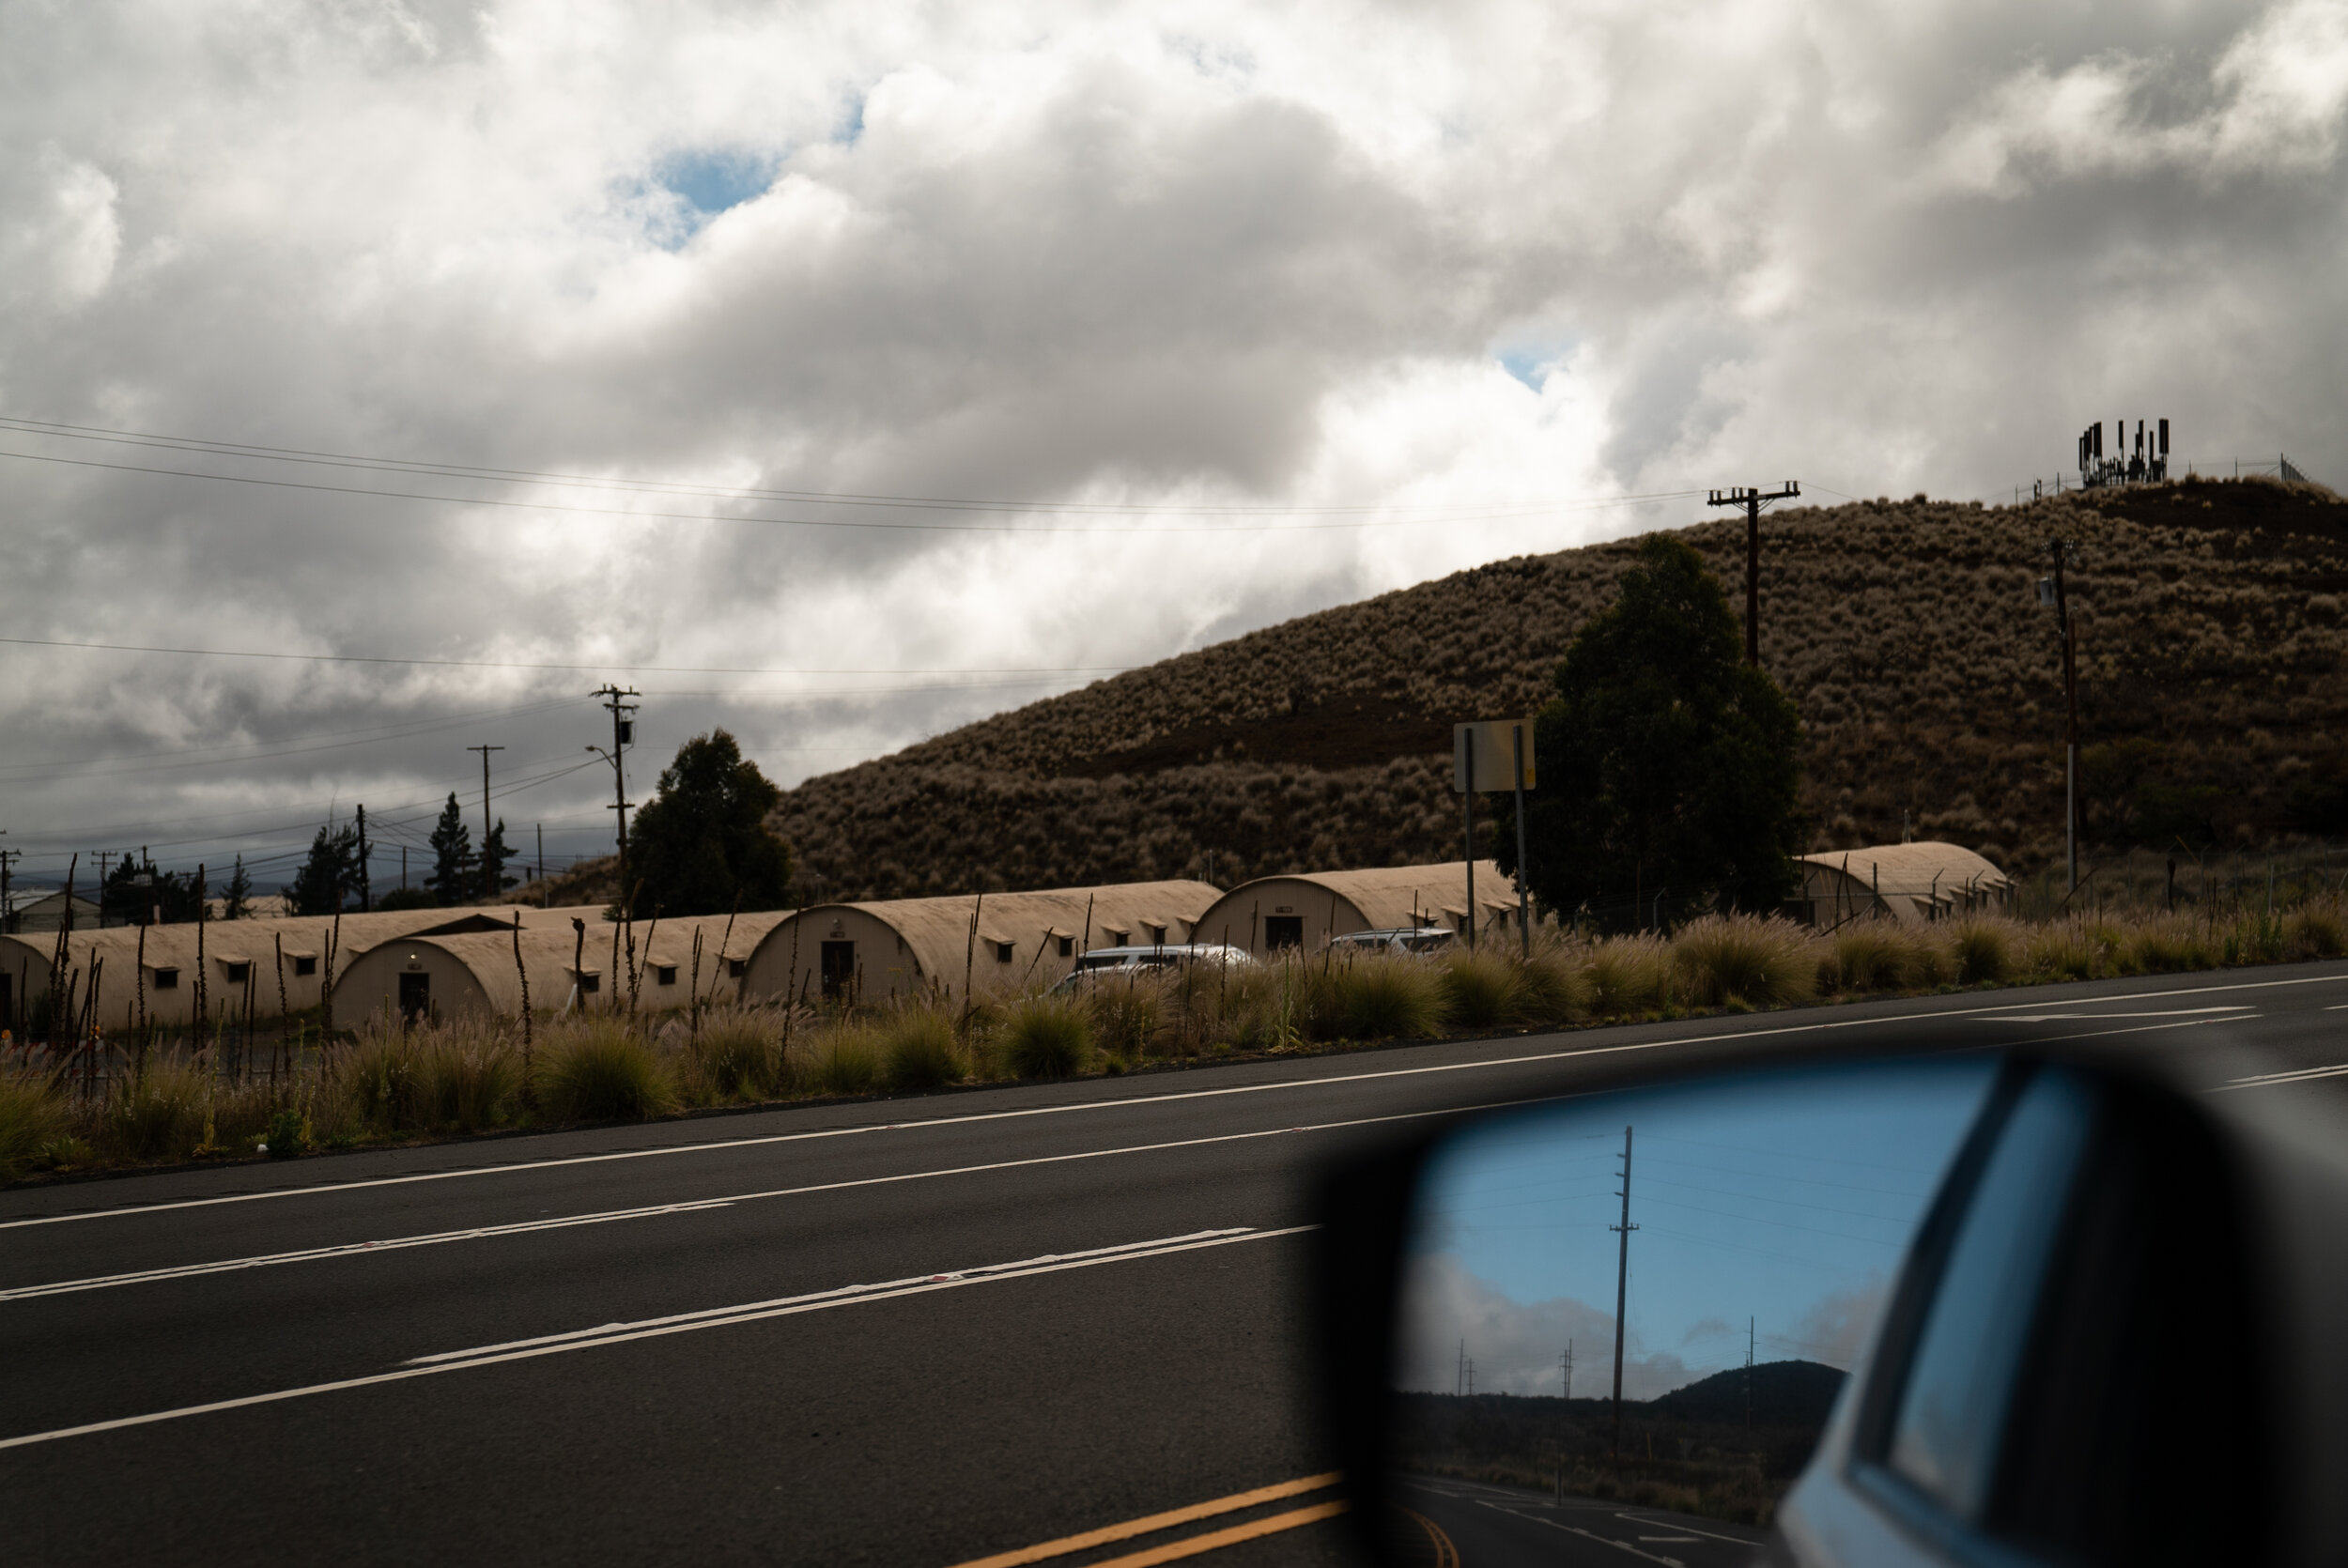 A military base just a mile away from the Mauna Kea Access Road, where bomb blasts can be heard regularly.